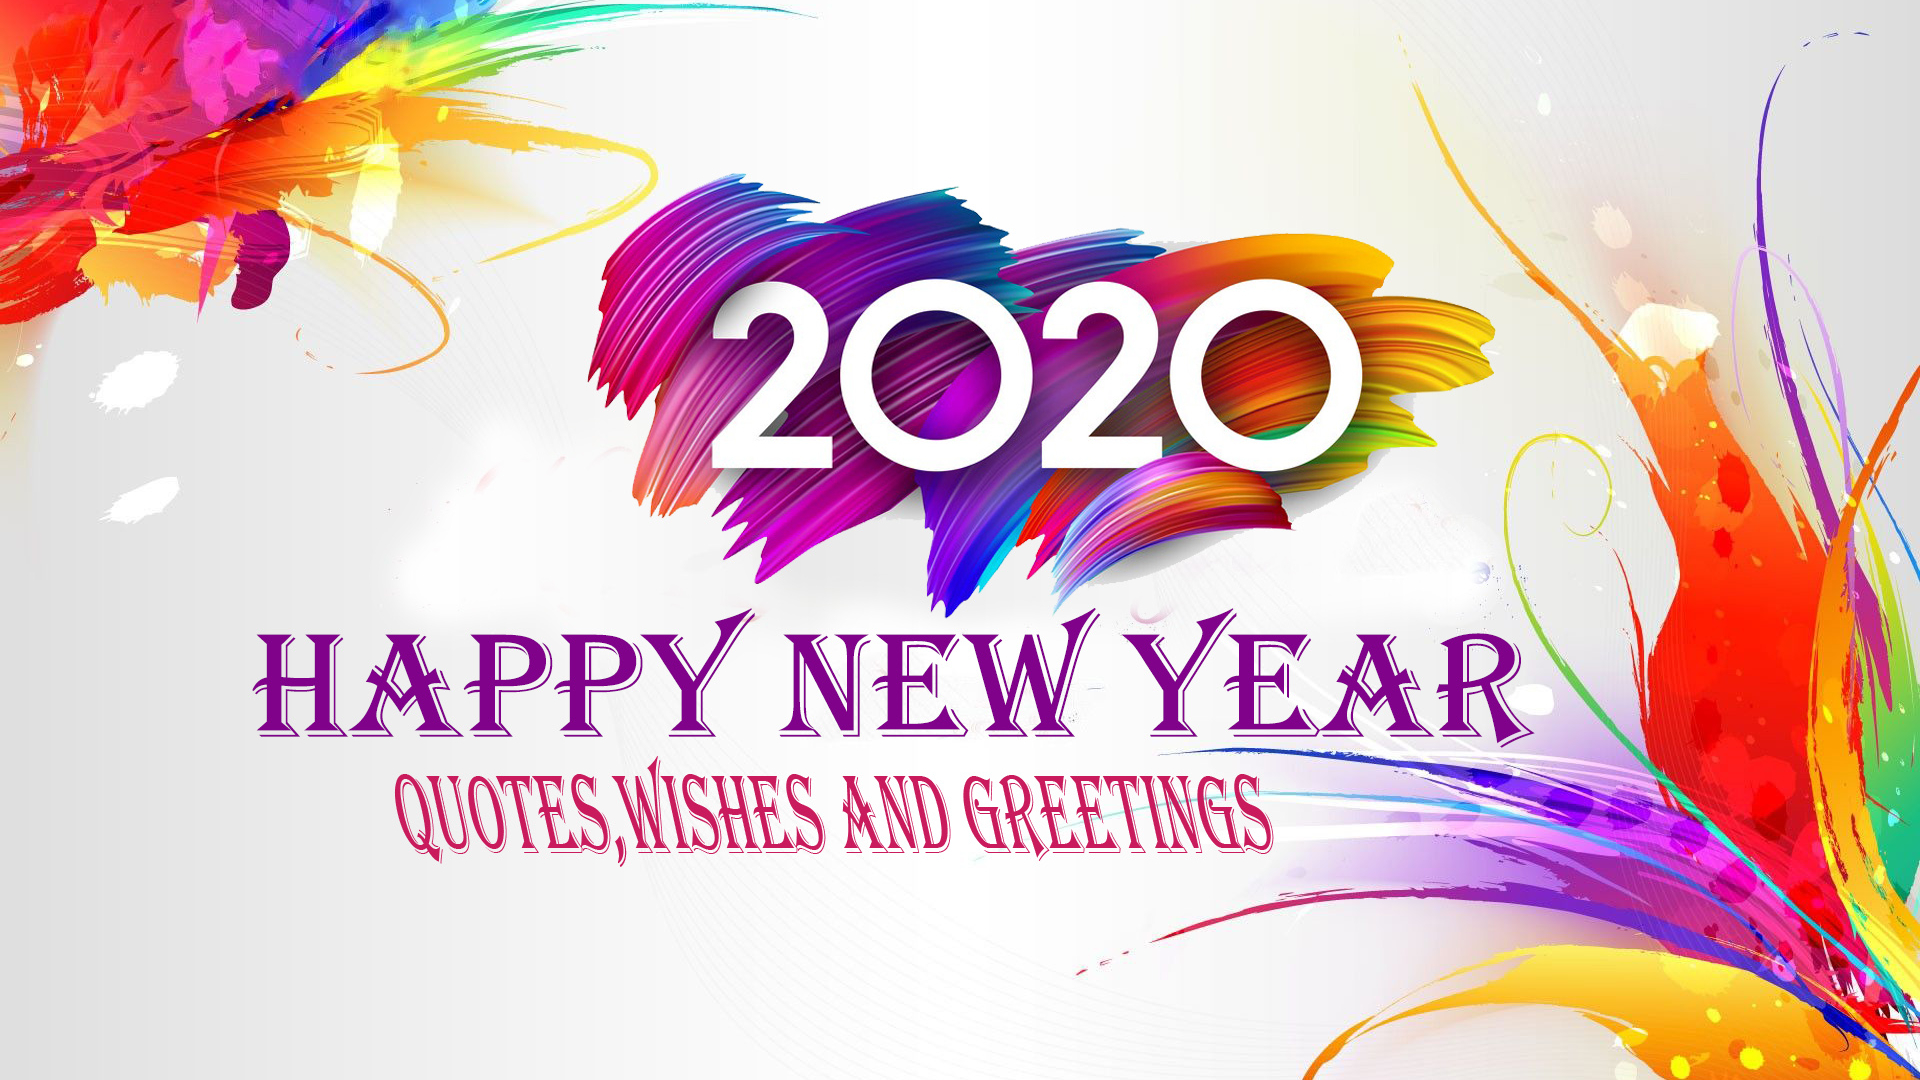 happy new year new year quotes images wishes